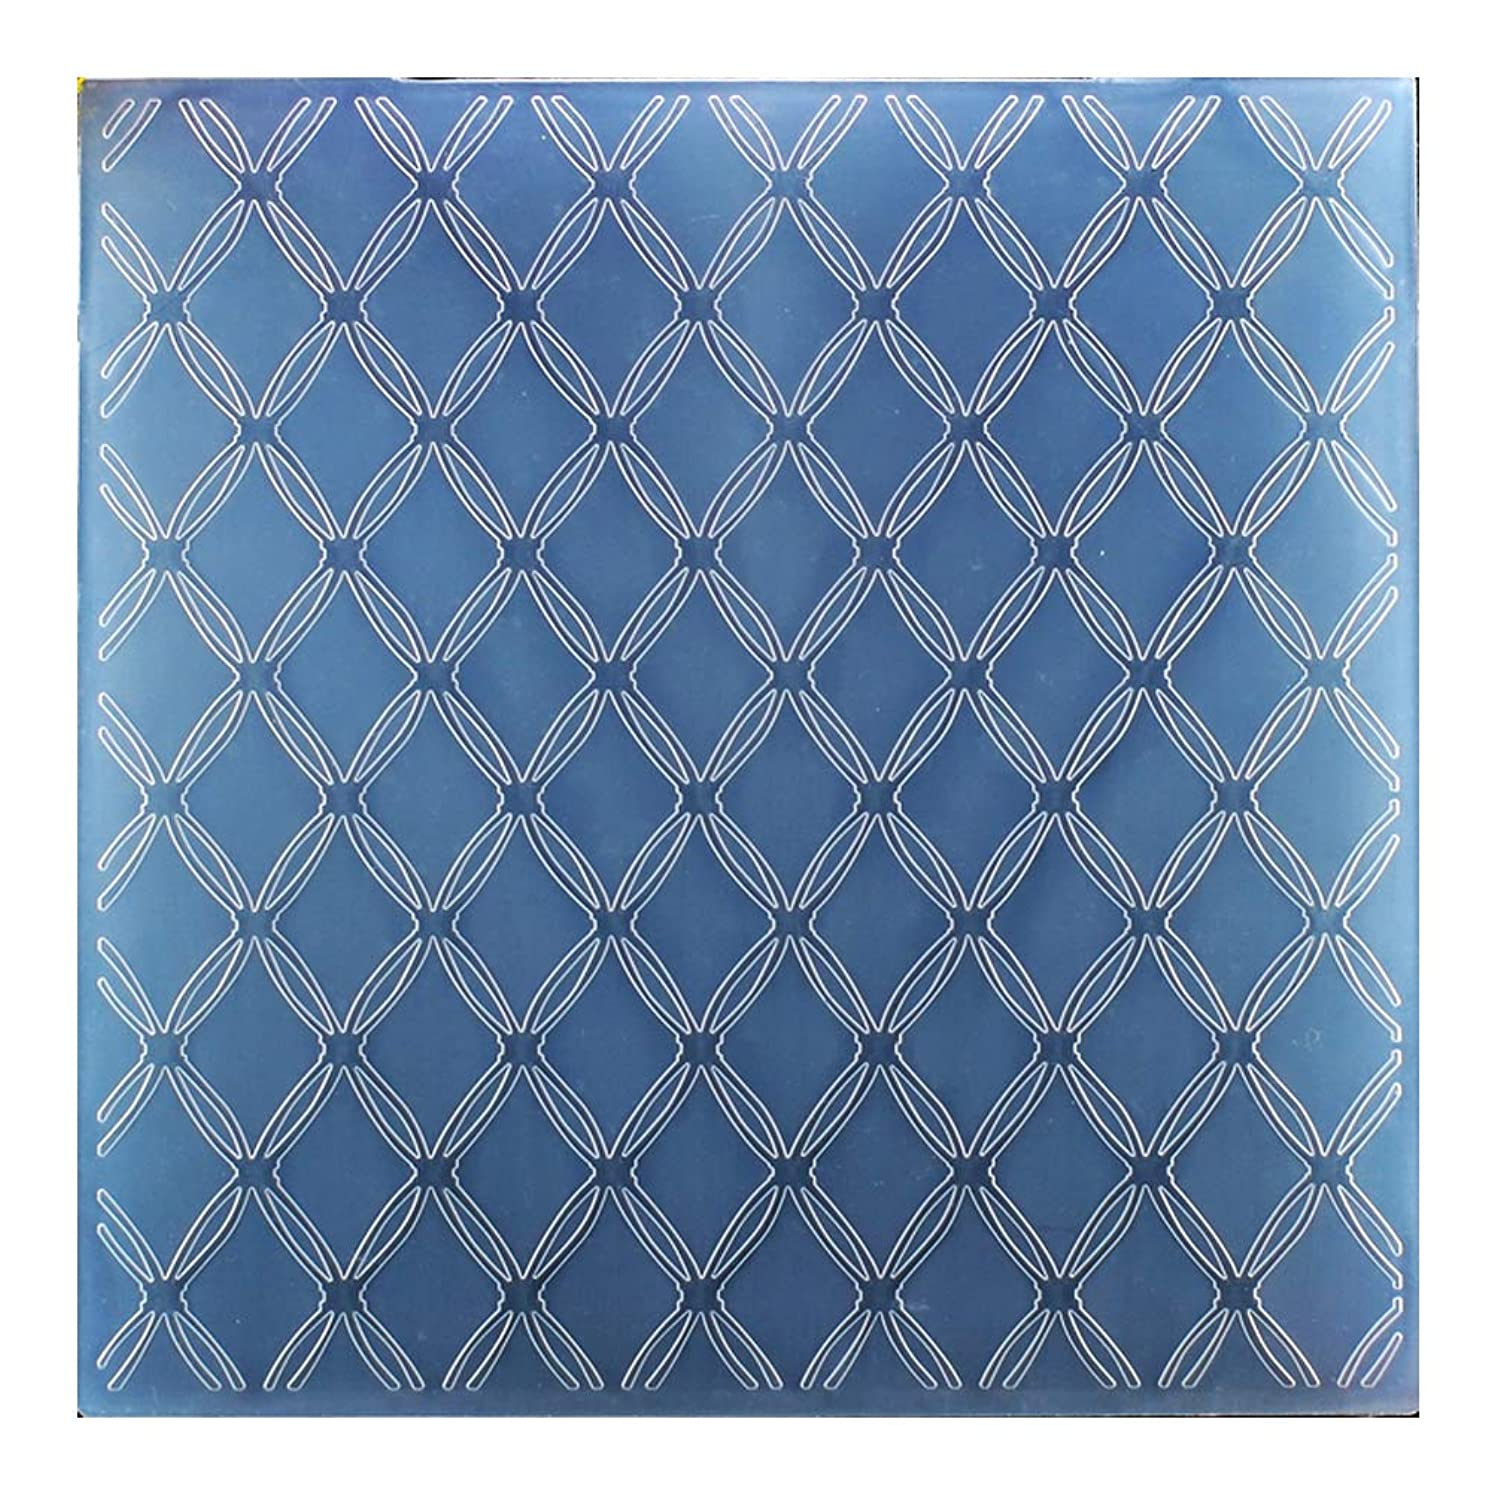 Kwan Crafts Large Size Mesh Plastic Embossing Folders for Card Making Scrapbooking and Other Paper Crafts, 19.7x19.7cm